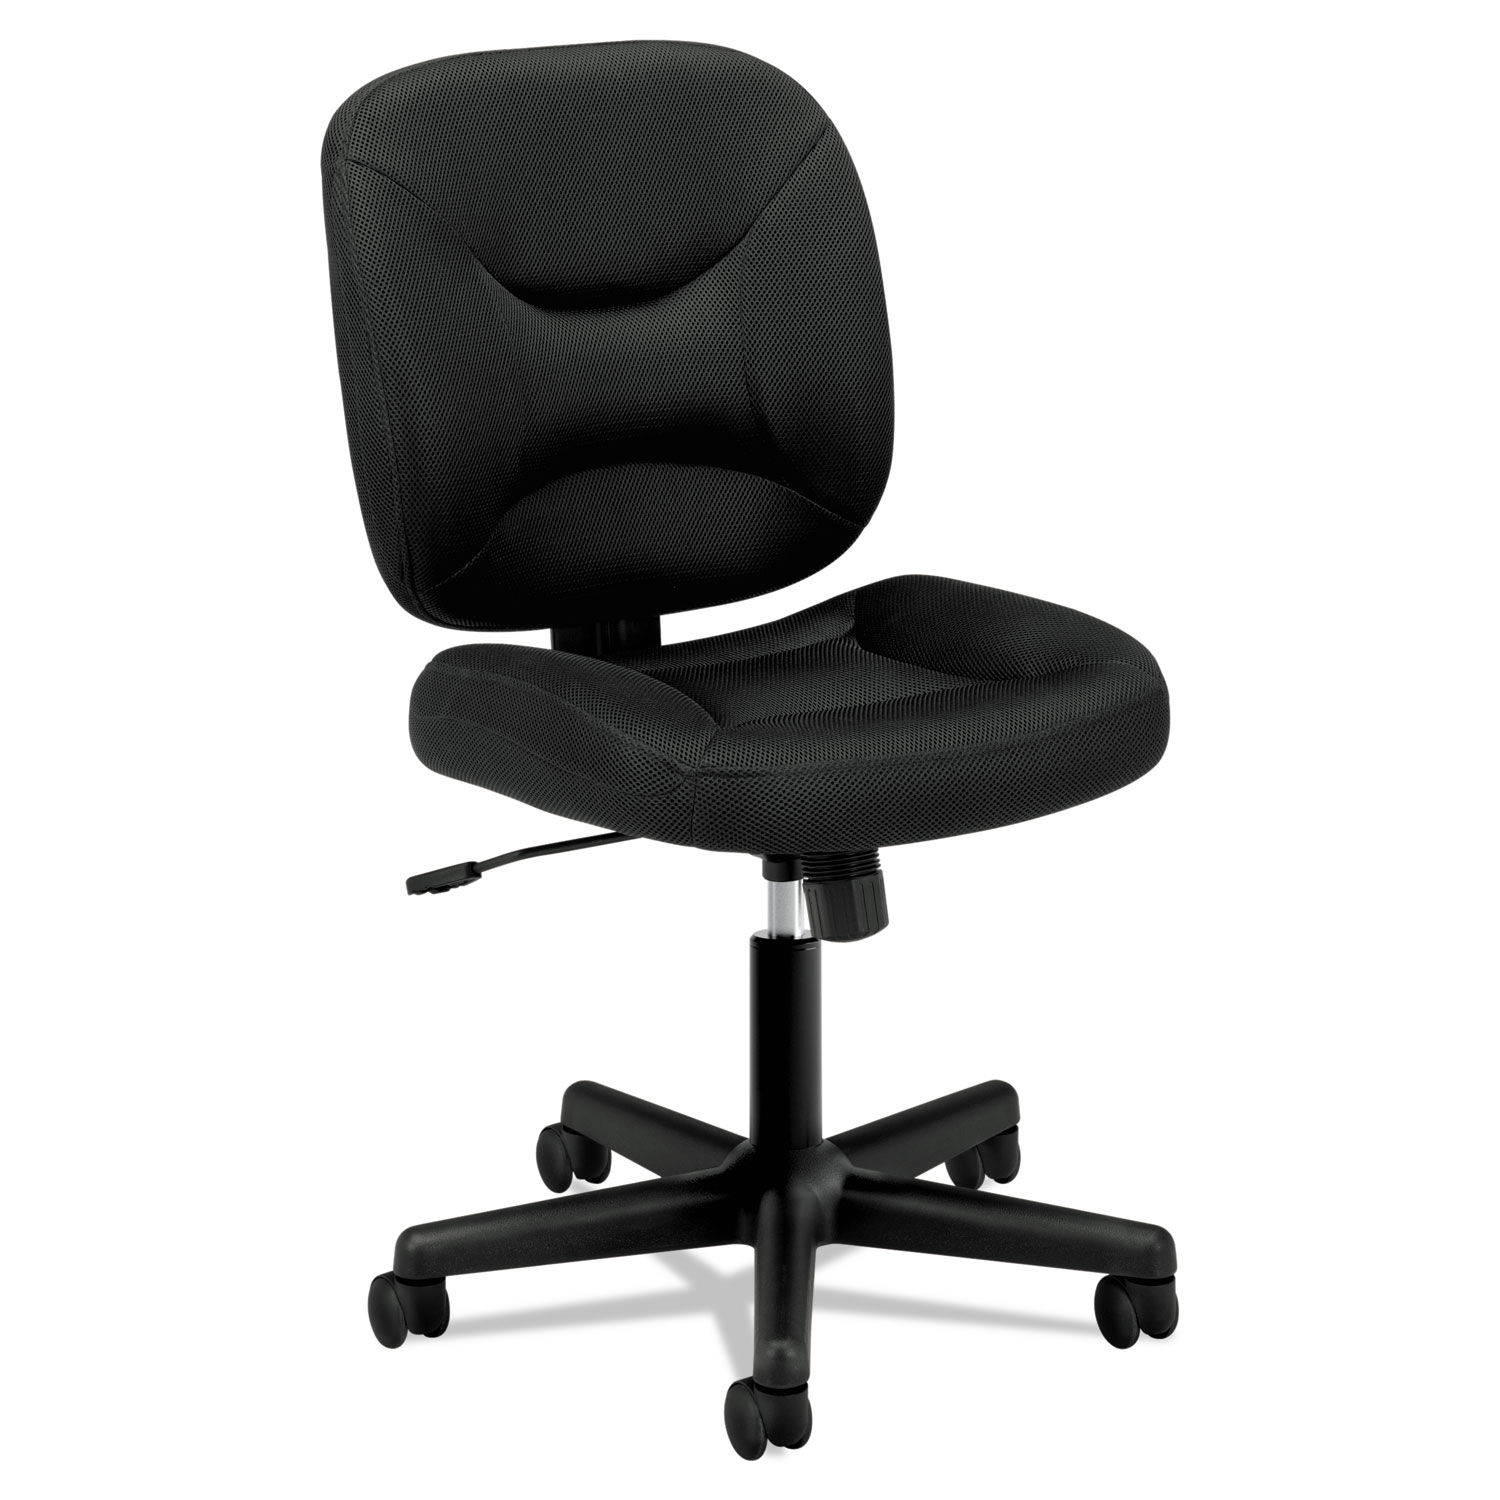 Prime Vl210 Low Back Task Chair Supports Up To 250 Lbs Black Seat Black Back Black Base Dailytribune Chair Design For Home Dailytribuneorg